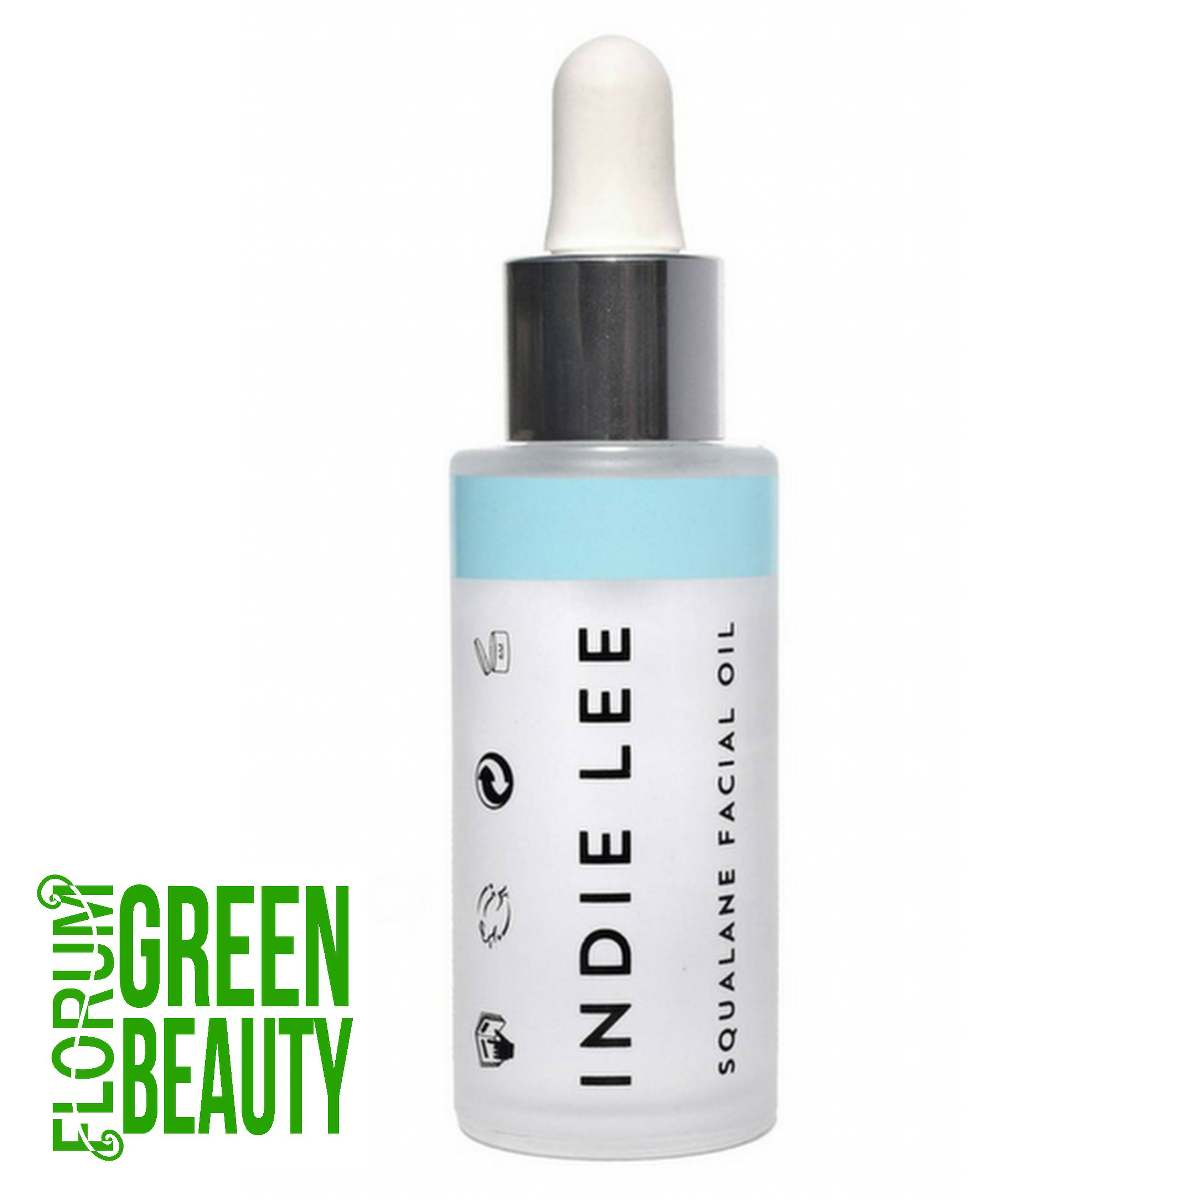 Indie Lee - Olive-derived Squalane Facial Oil